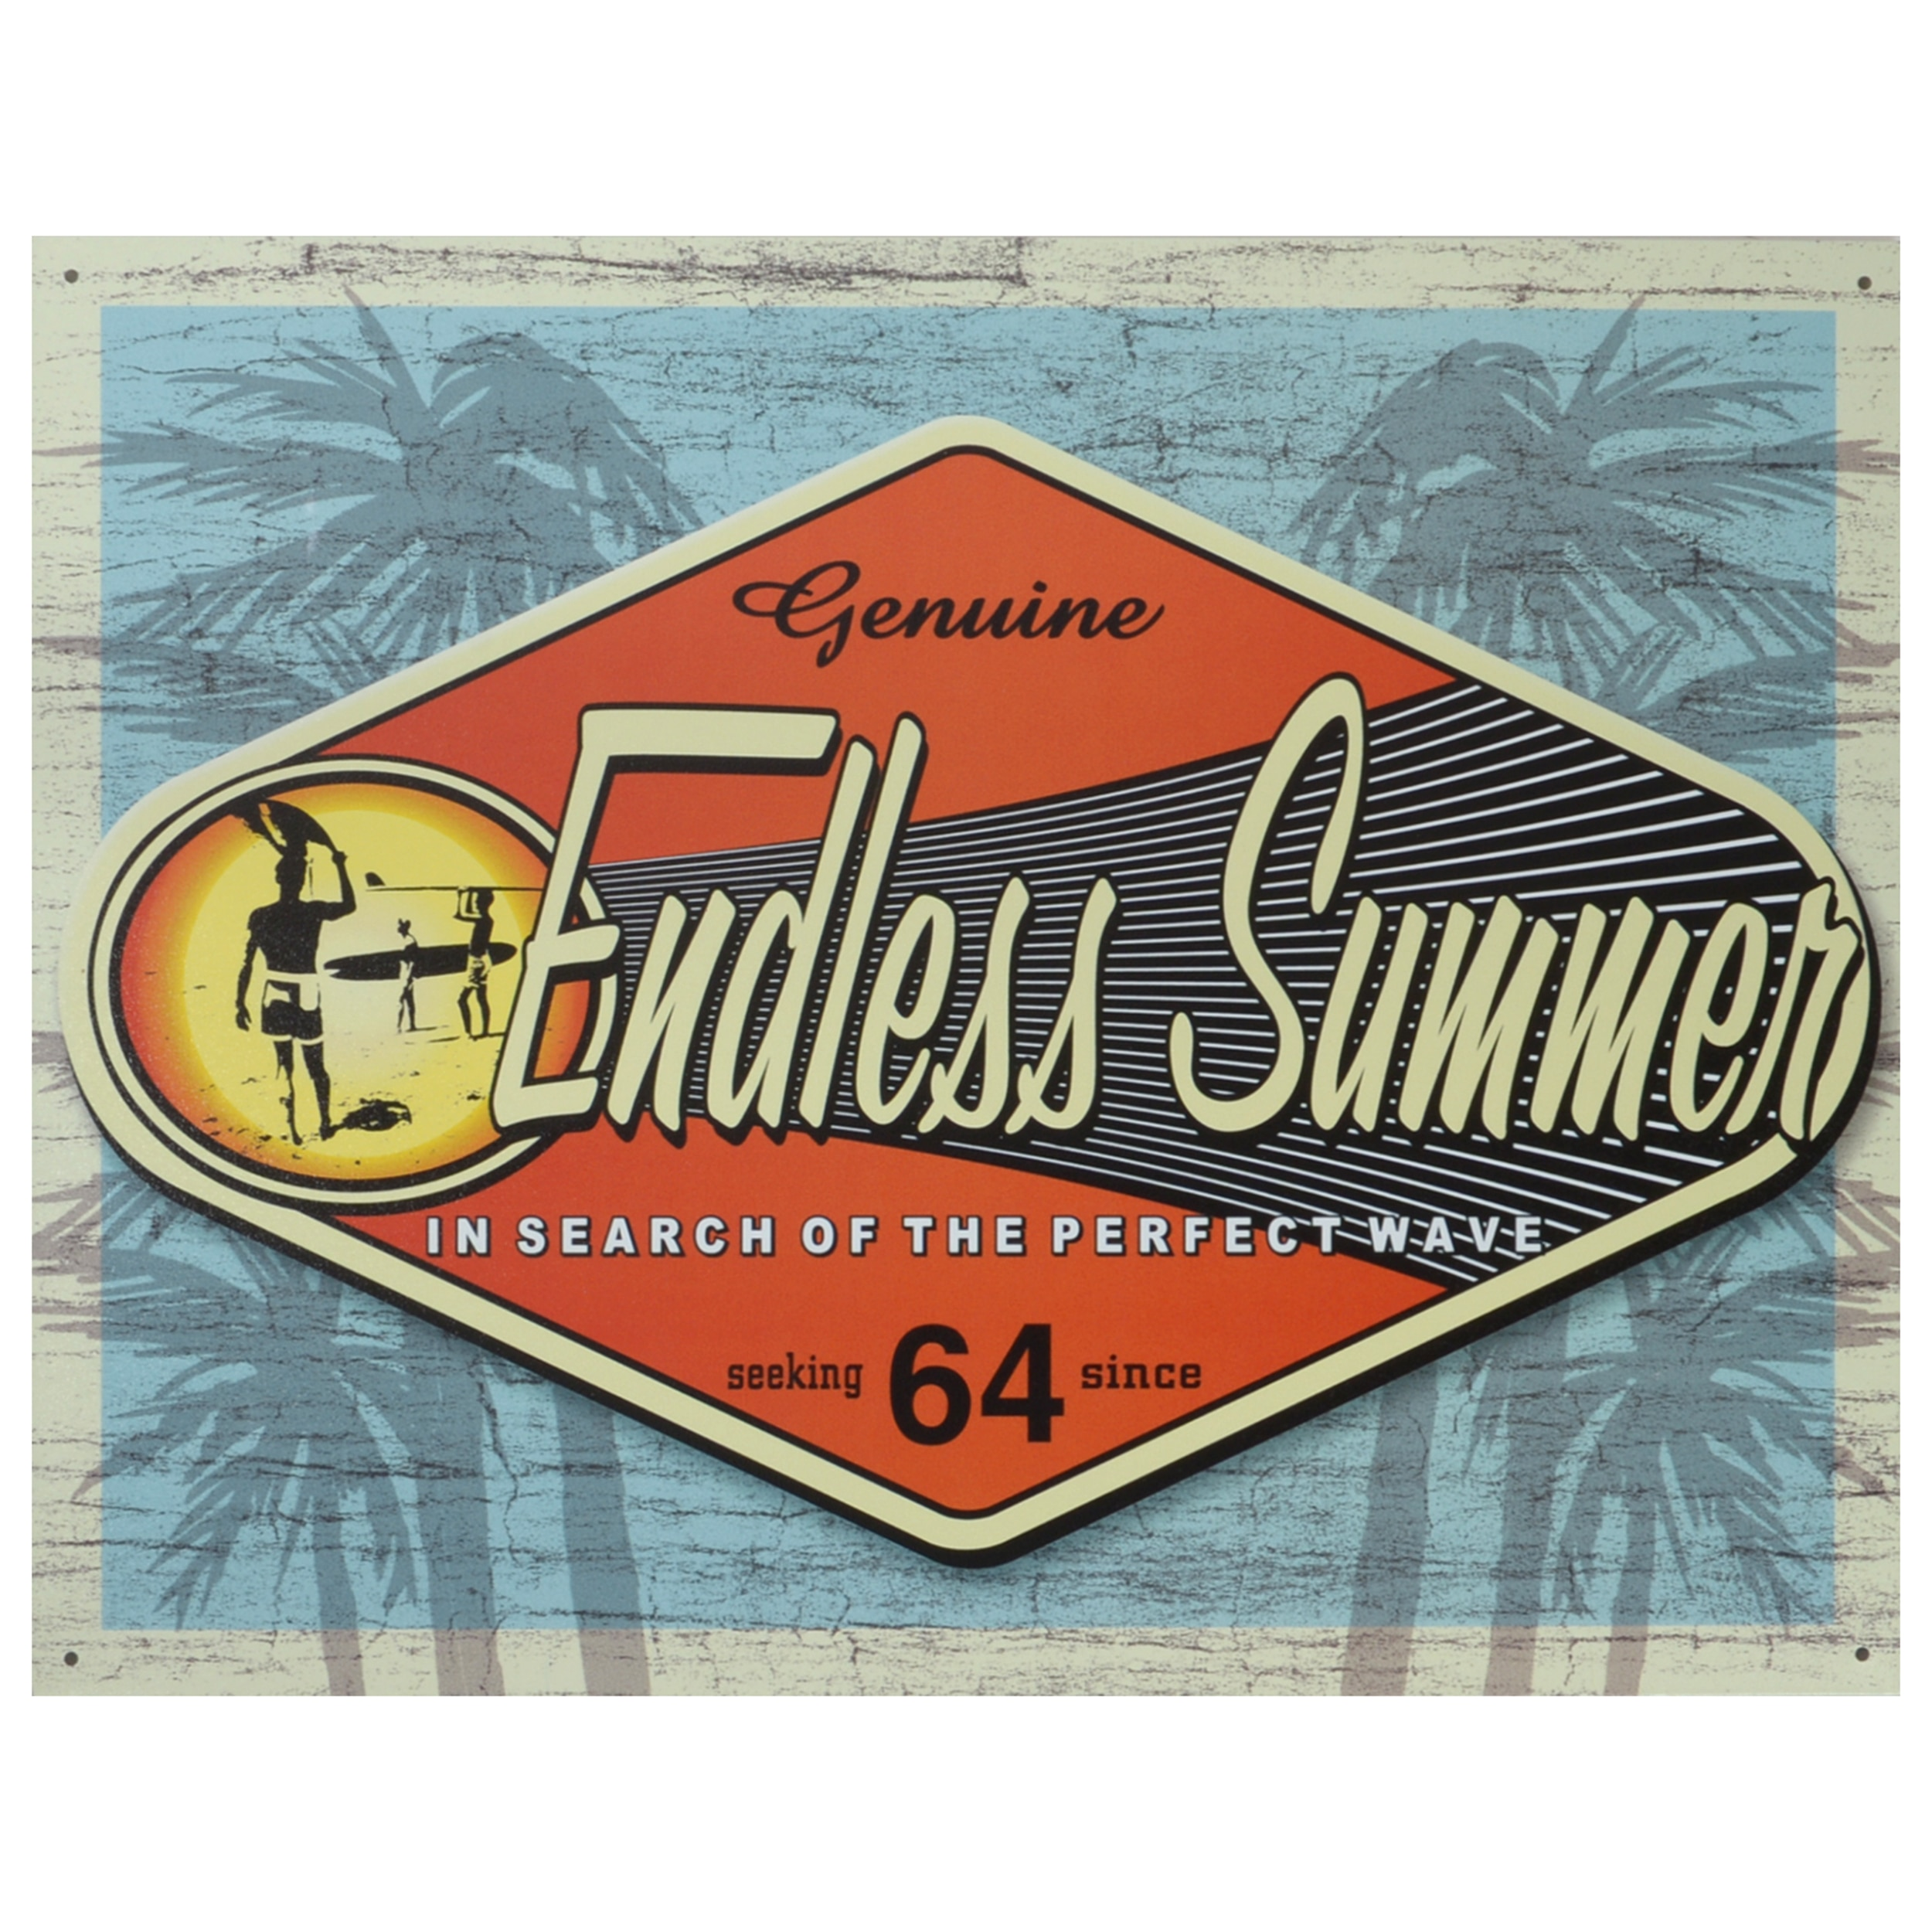 Vintage Metal Art 'Endless Summer' Decorative Tin Sign